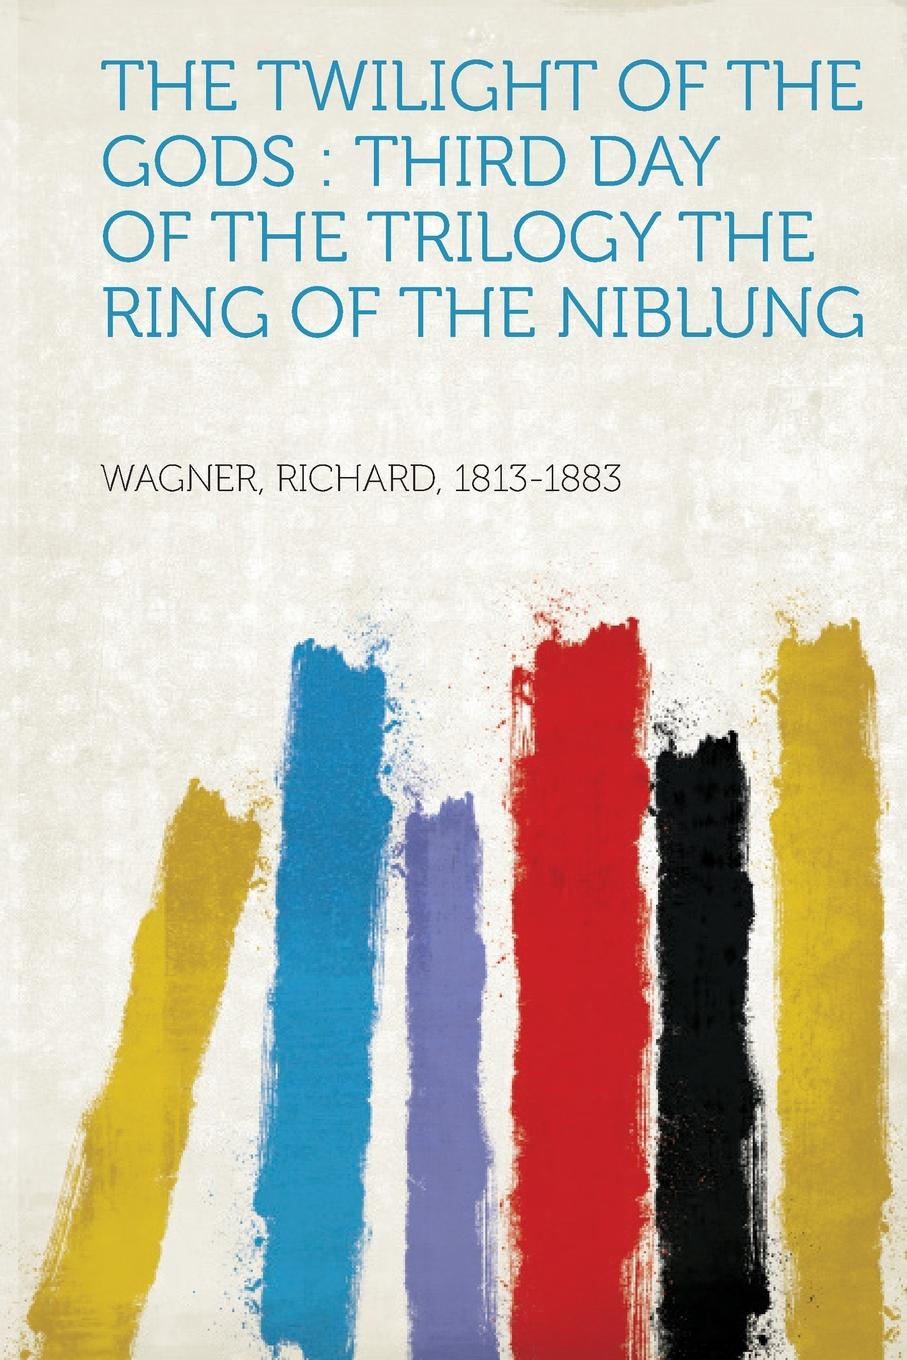 The Twilight of the Gods. Third Day of the Trilogy the Ring of the Niblung